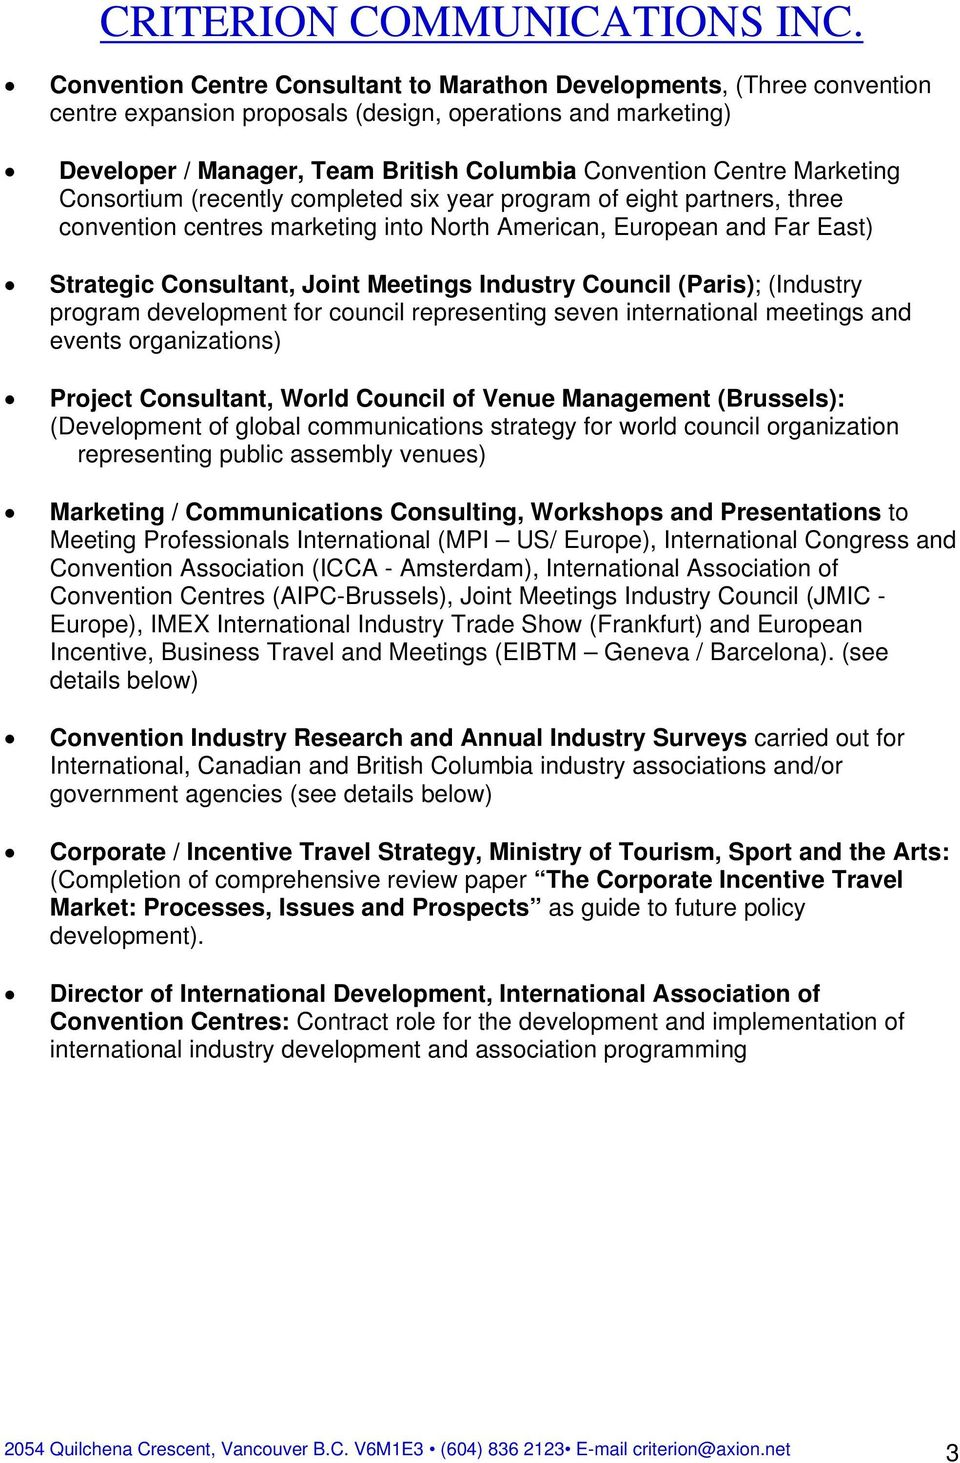 Industry Council (Paris); (Industry program development for council representing seven international meetings and events organizations) Project Consultant, World Council of Venue Management